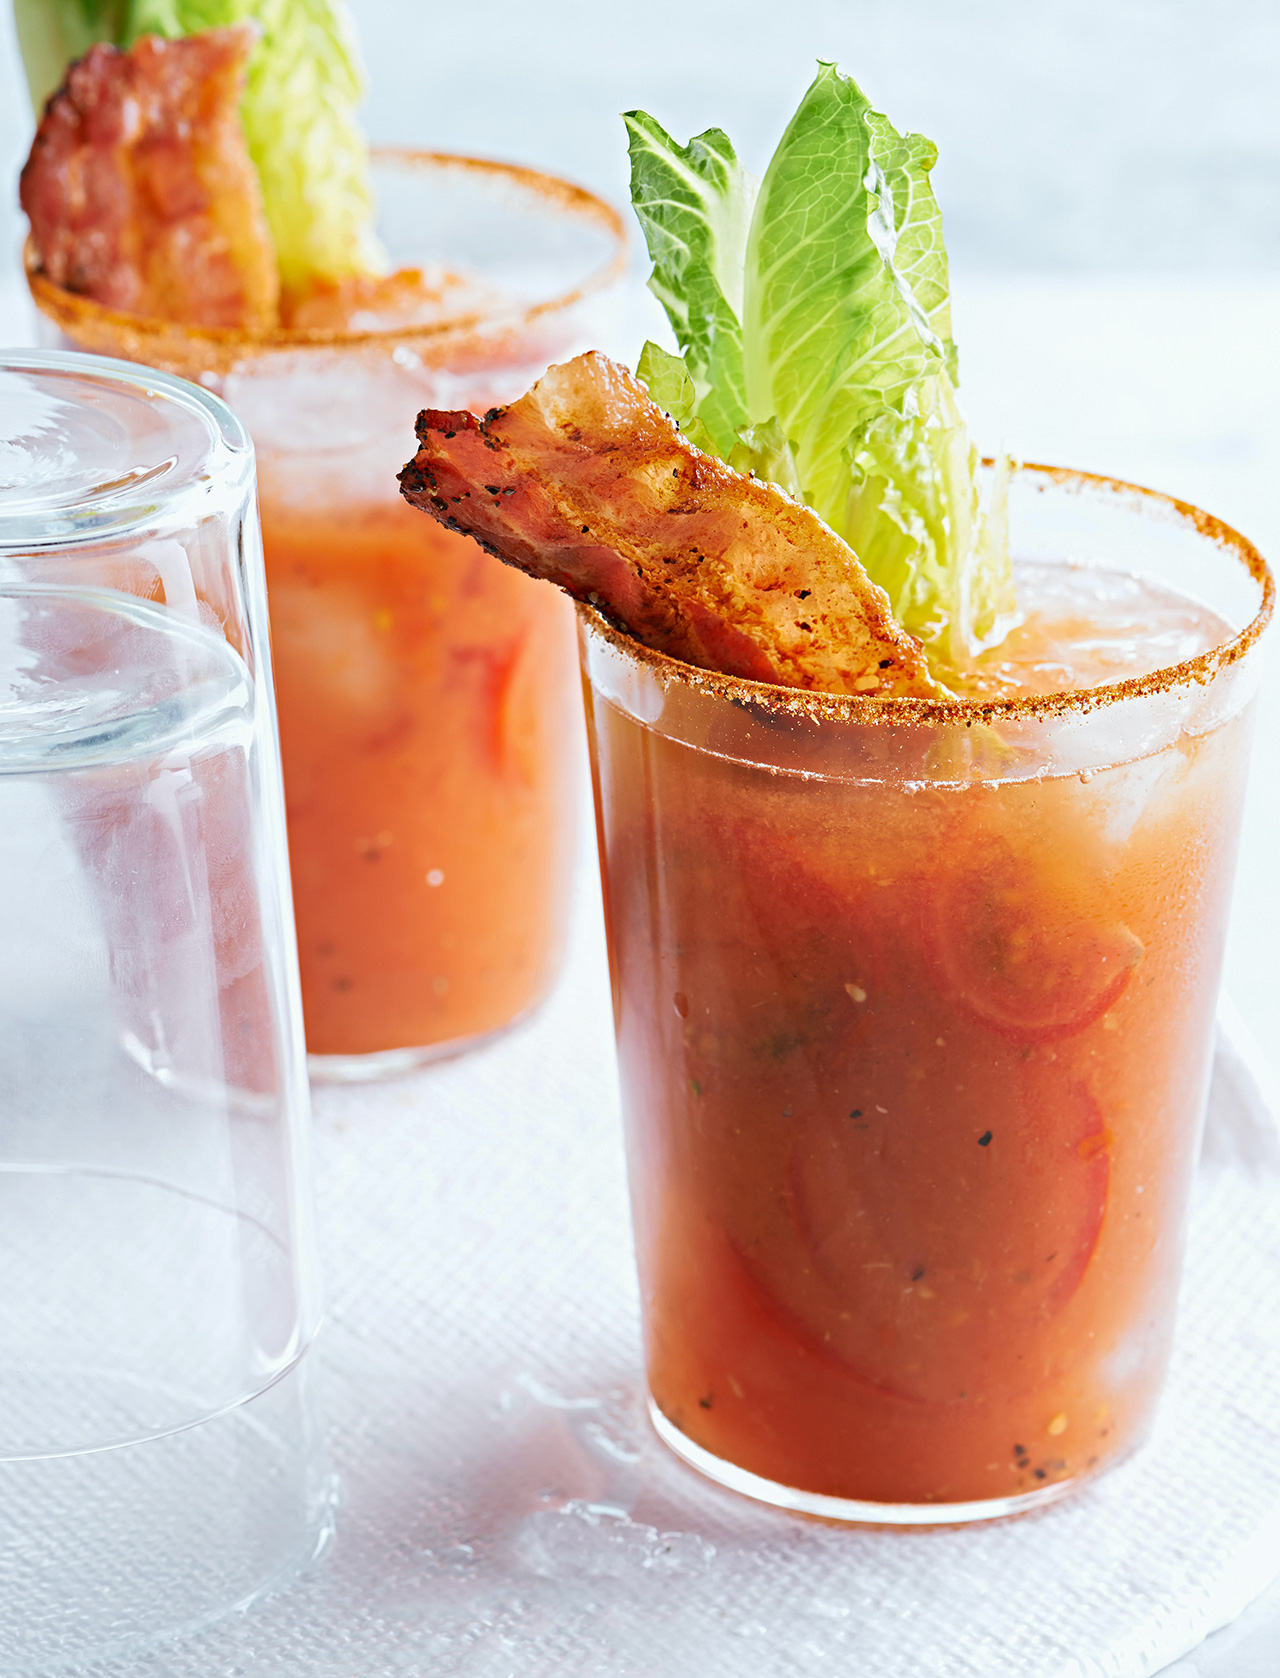 Tomato-Bacon Sipper